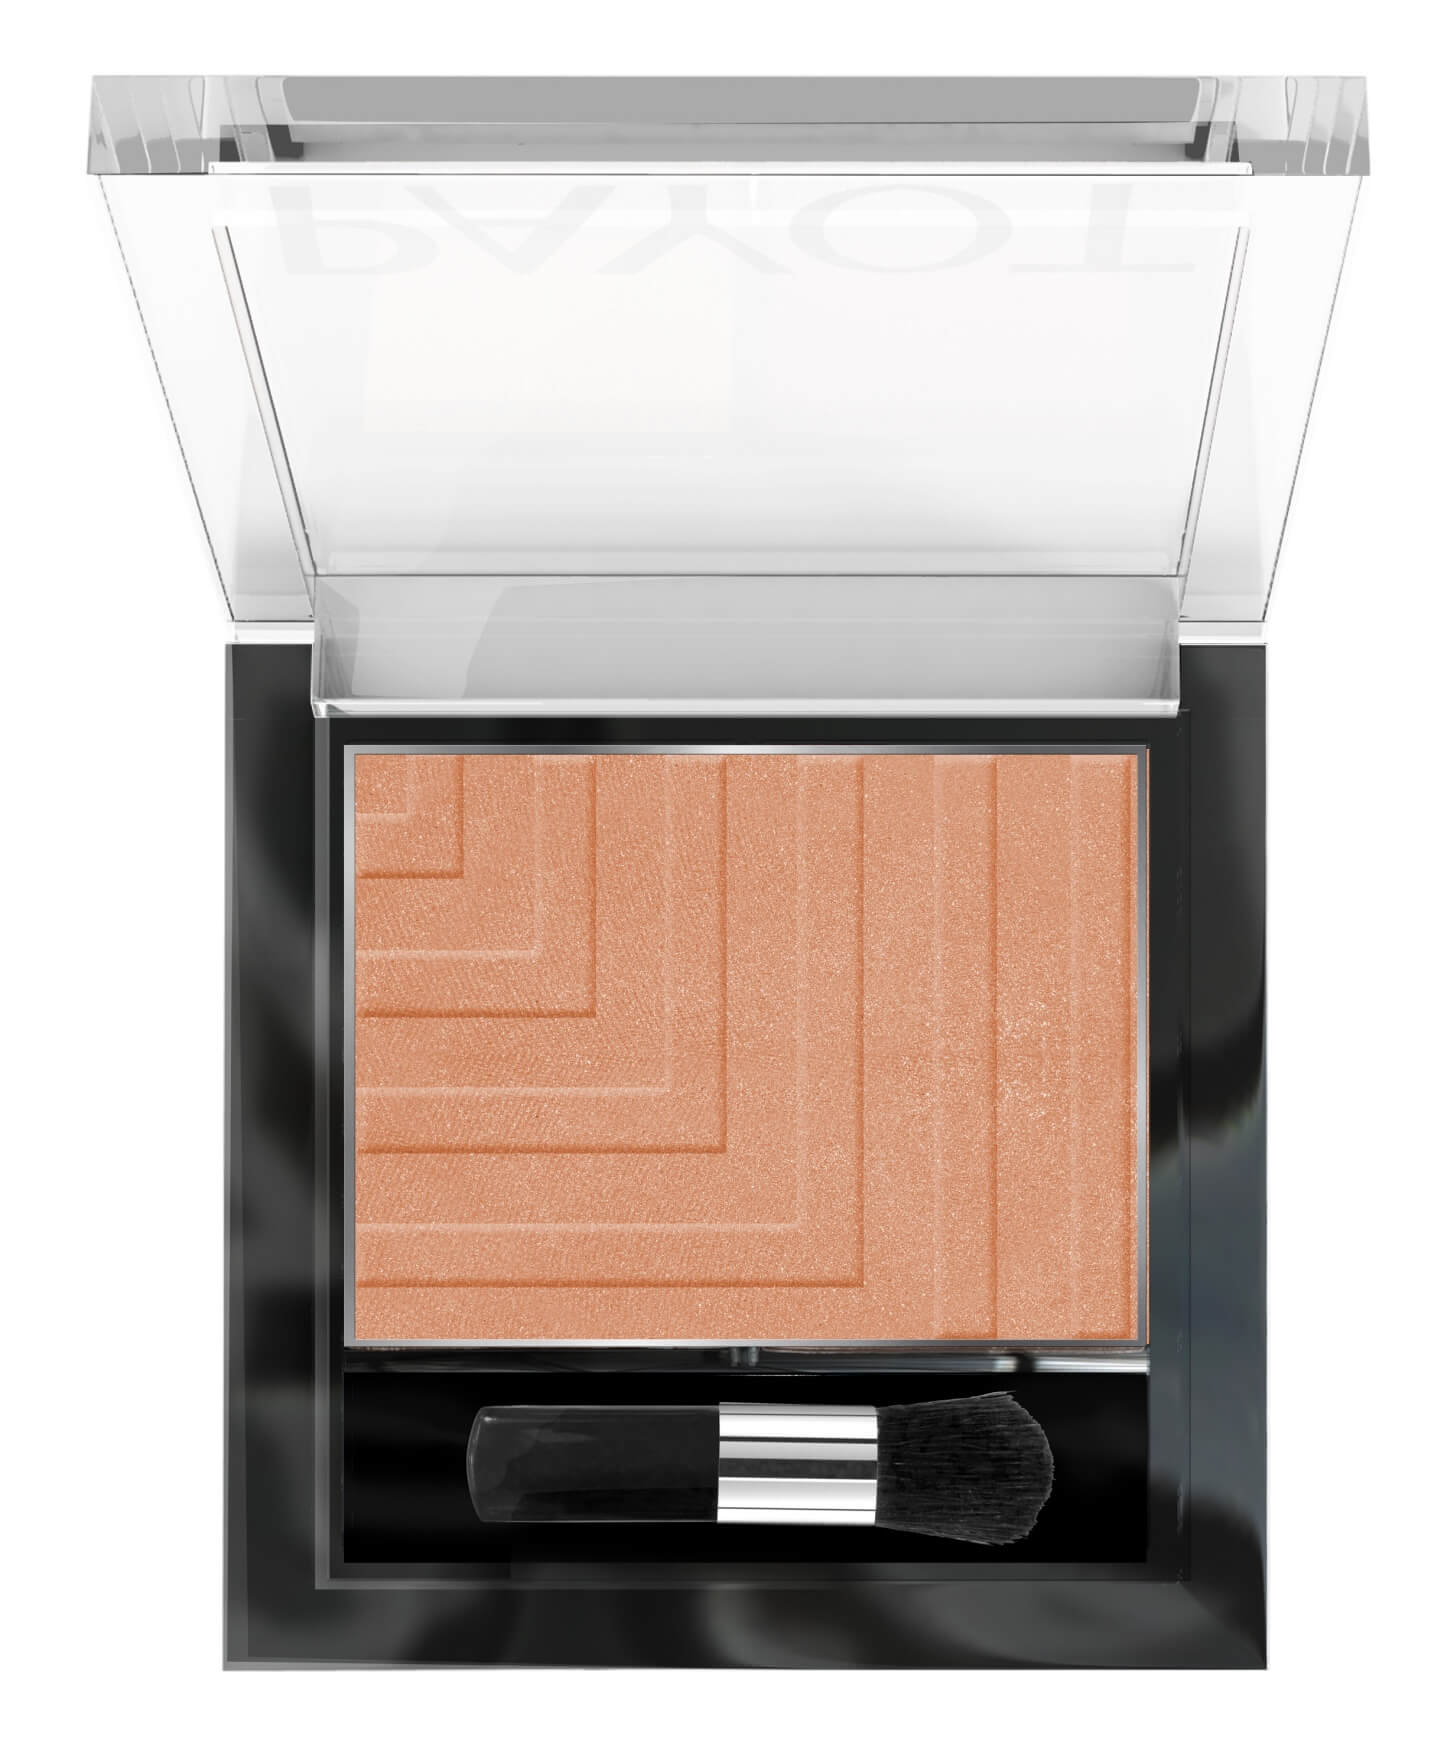 Blush Compacto Payot Intuition - Blush 5g